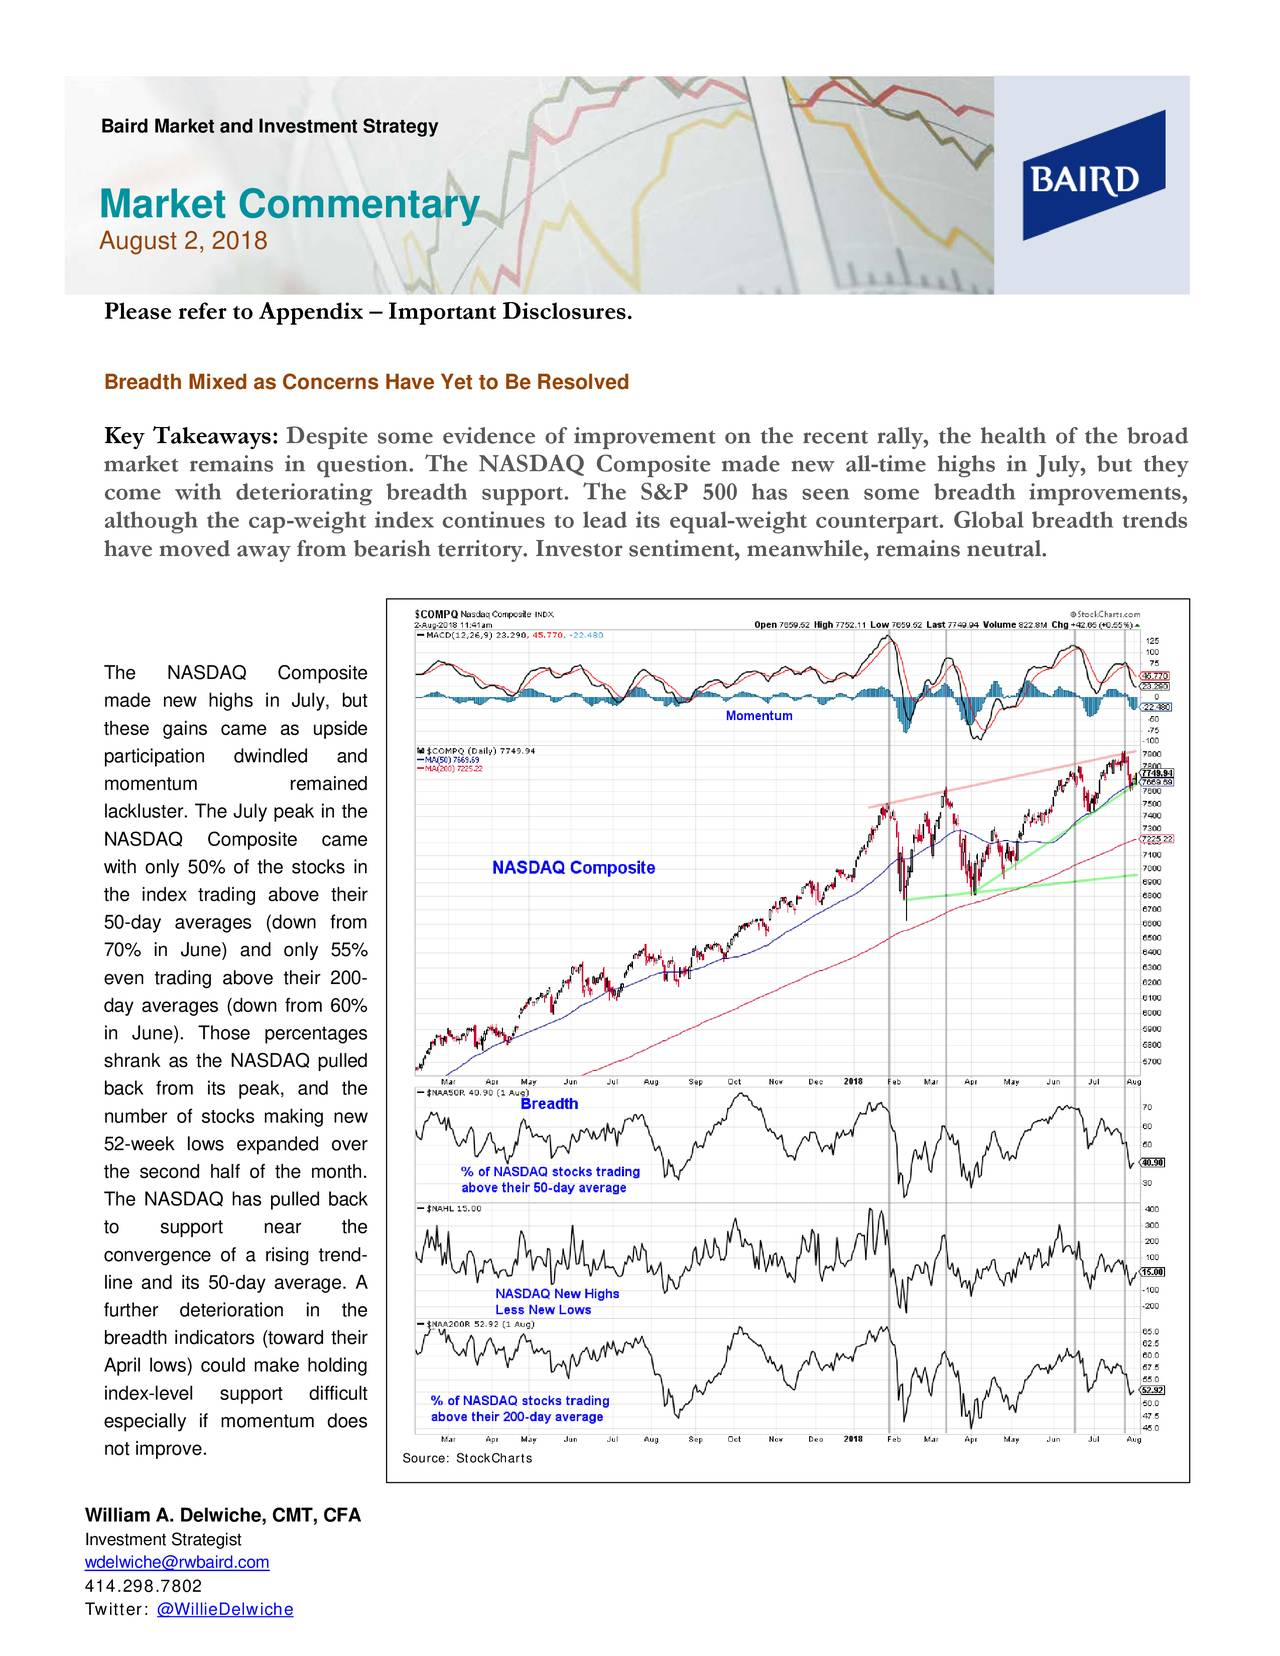 Market Commentary August 2, 2018 Please refer to Appendix – Important Disclosures. Breadth Mixed as Concerns Have Yet to Be Resolved Key Takeaways: Despite some evidence of improvement on the recent rally, the health of the broad market remains in question. The NASDAQ Composite made new all -time highs in July, but they come with deteriorating breadth support. The S&P 500 has seen some bread th improvements, although the cap-weight index continues to lead its equal -weight counterpart. Global breadth trends have moved away from bearish territory. Investor sentiment, meanwhile, remains neutral. The NASDAQ Composite made new highs in July, but these gains came as upside participation dwindled and momentum remained lackluster. The July peak in the NASDAQ Composite came with only 50% of the stocks in the index trading above their 50-day averages (down from 70% in June) and only 55% even trading above their 200- day averages (down from 60% in June). Those percentages shrank as the NASDAQ pulled back from its peak, and the number of stocks making new 52-week lows expanded over the second half of the month. The NASDAQ has pulled back to support near the convergence of a rising trend- line and its 50-day average. A further deterioration in the breadth indicators (toward their April lows) could make holding index-level support difficult especially if momentum does not improve. Source: StockCharts William A. Delwiche, CMT, CFA Investment Strategist wdelwiche@rwbaird.com 414.298.7802 Twitter: @WillieDelwiche